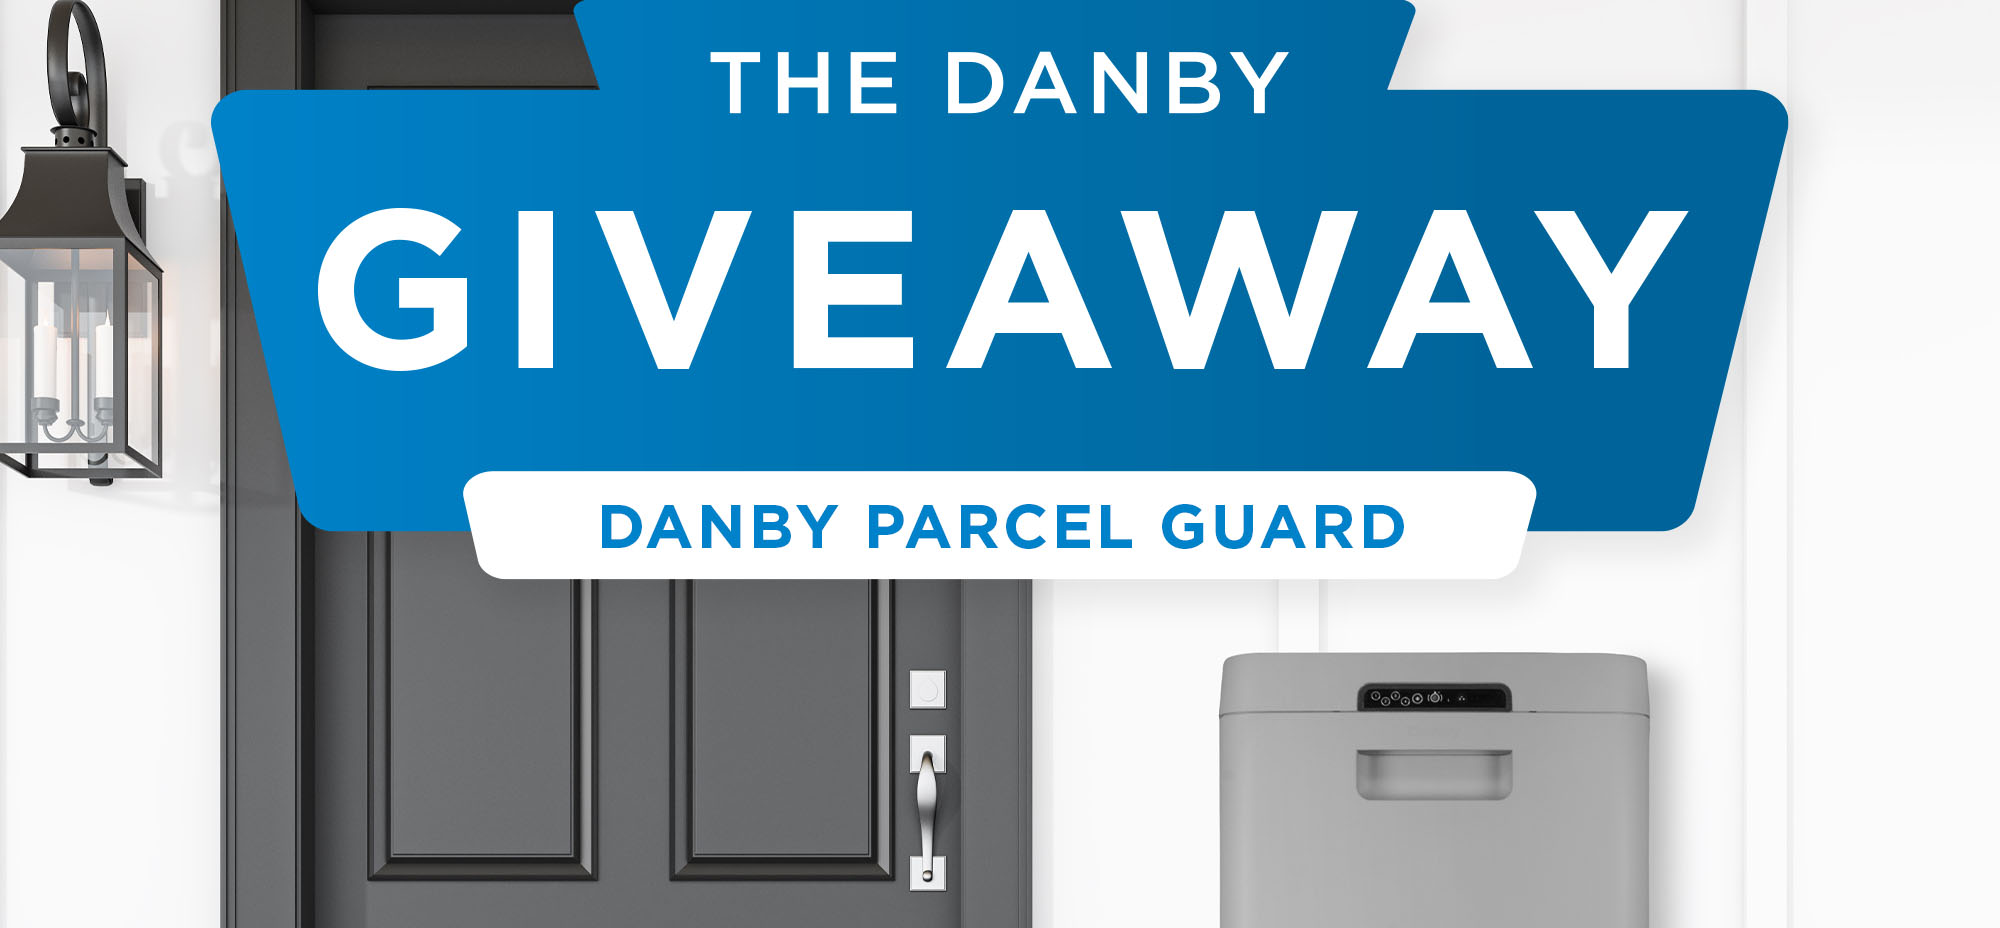 online contests, sweepstakes and giveaways - HAPPY AT HOME GIVEAWAY! Win a Danby Parcel Guard!